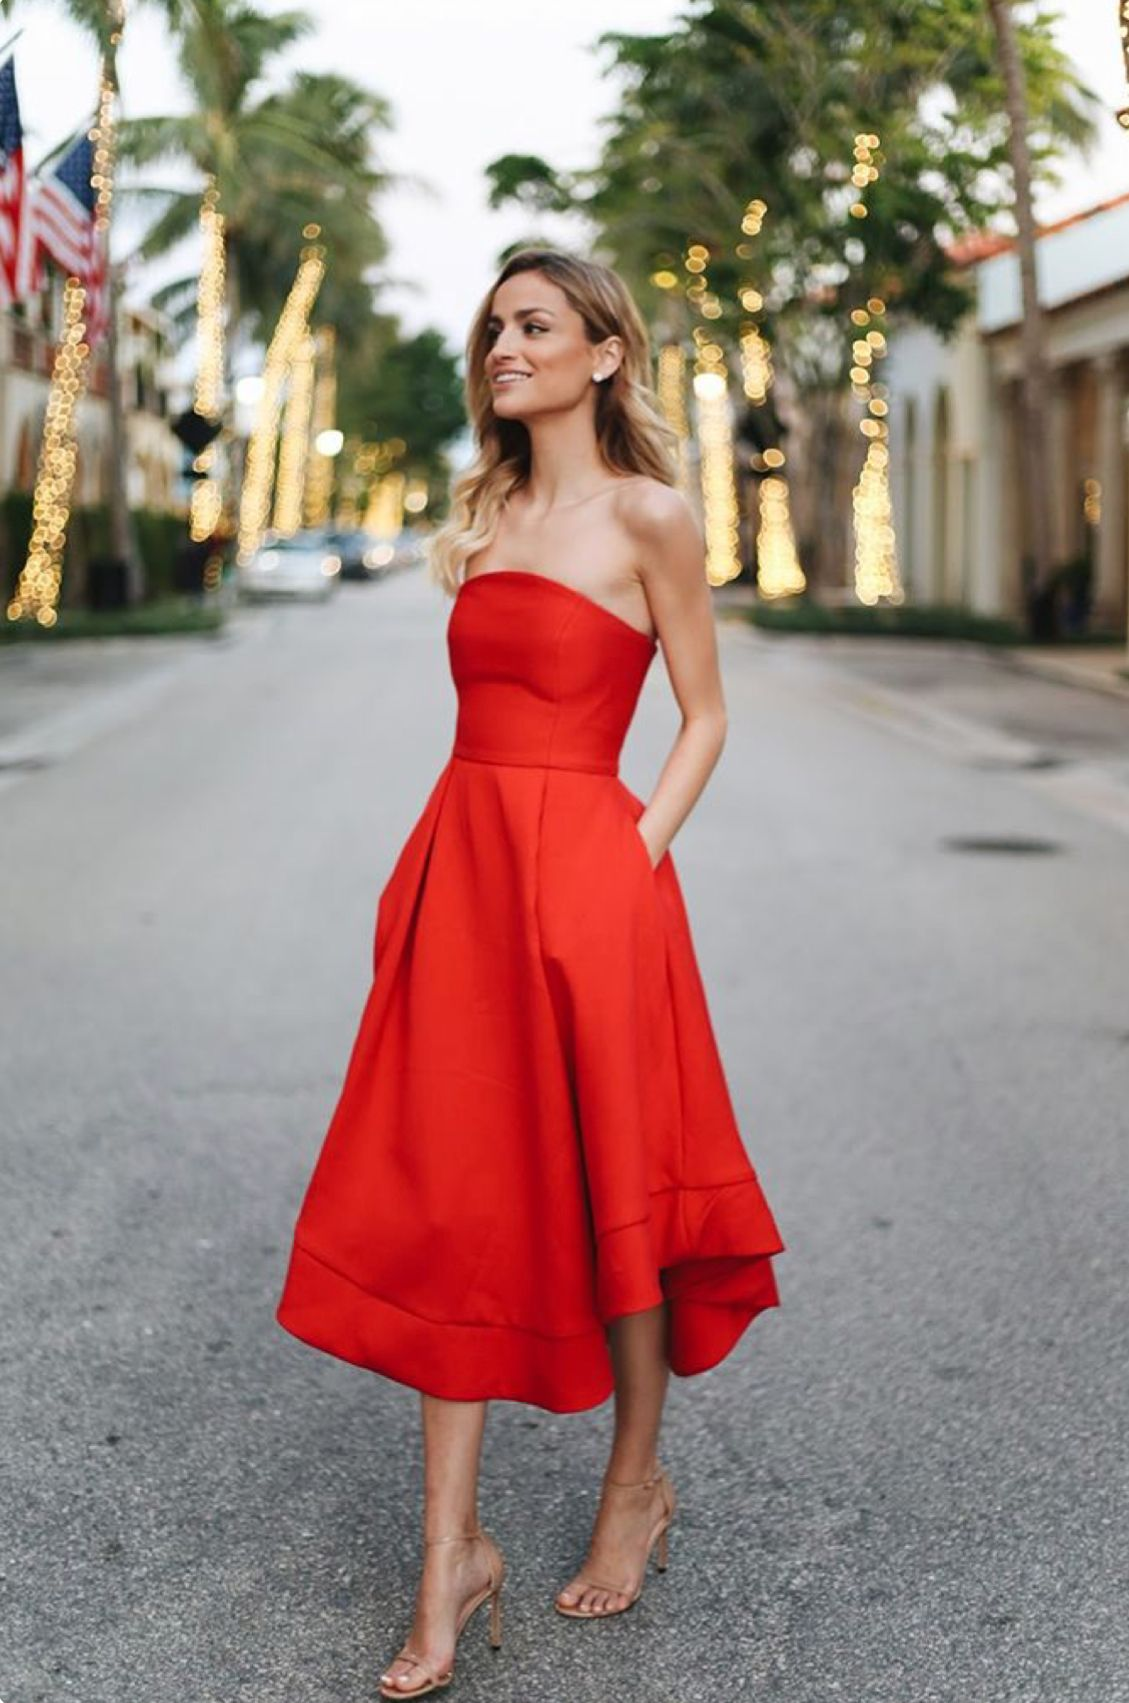 Rotes Kleid Stylen Love The Style Length And Color Of This Dress Sylvie2910